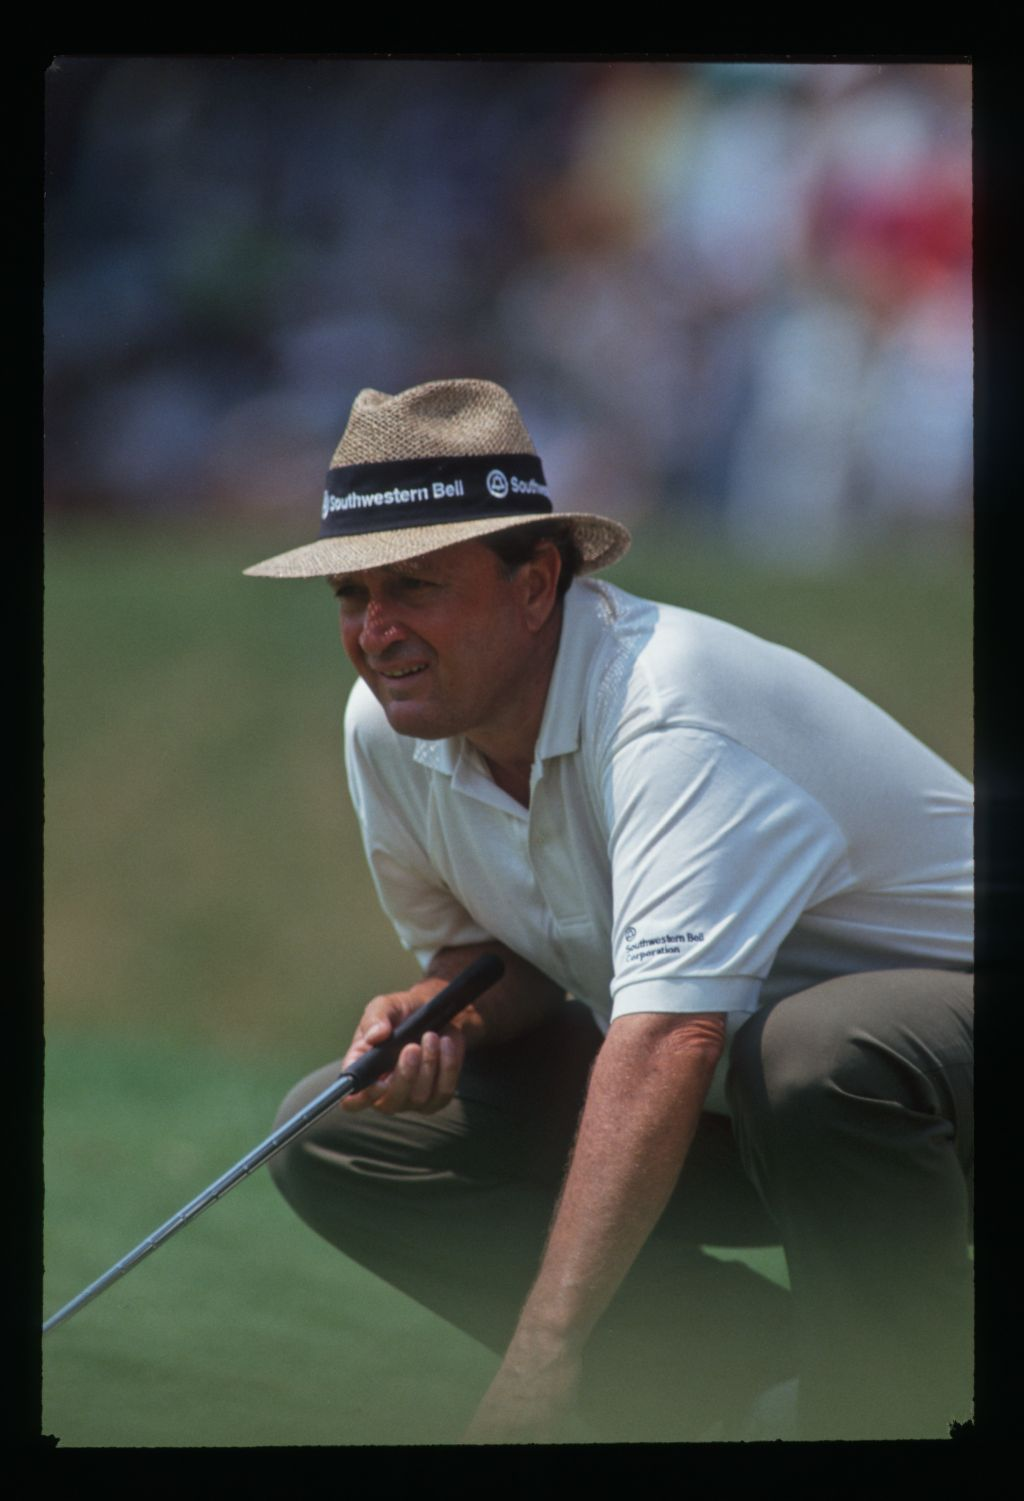 Golfer Ray Floyd concentrates on the line of his putt at the 1993 United States Open Championship